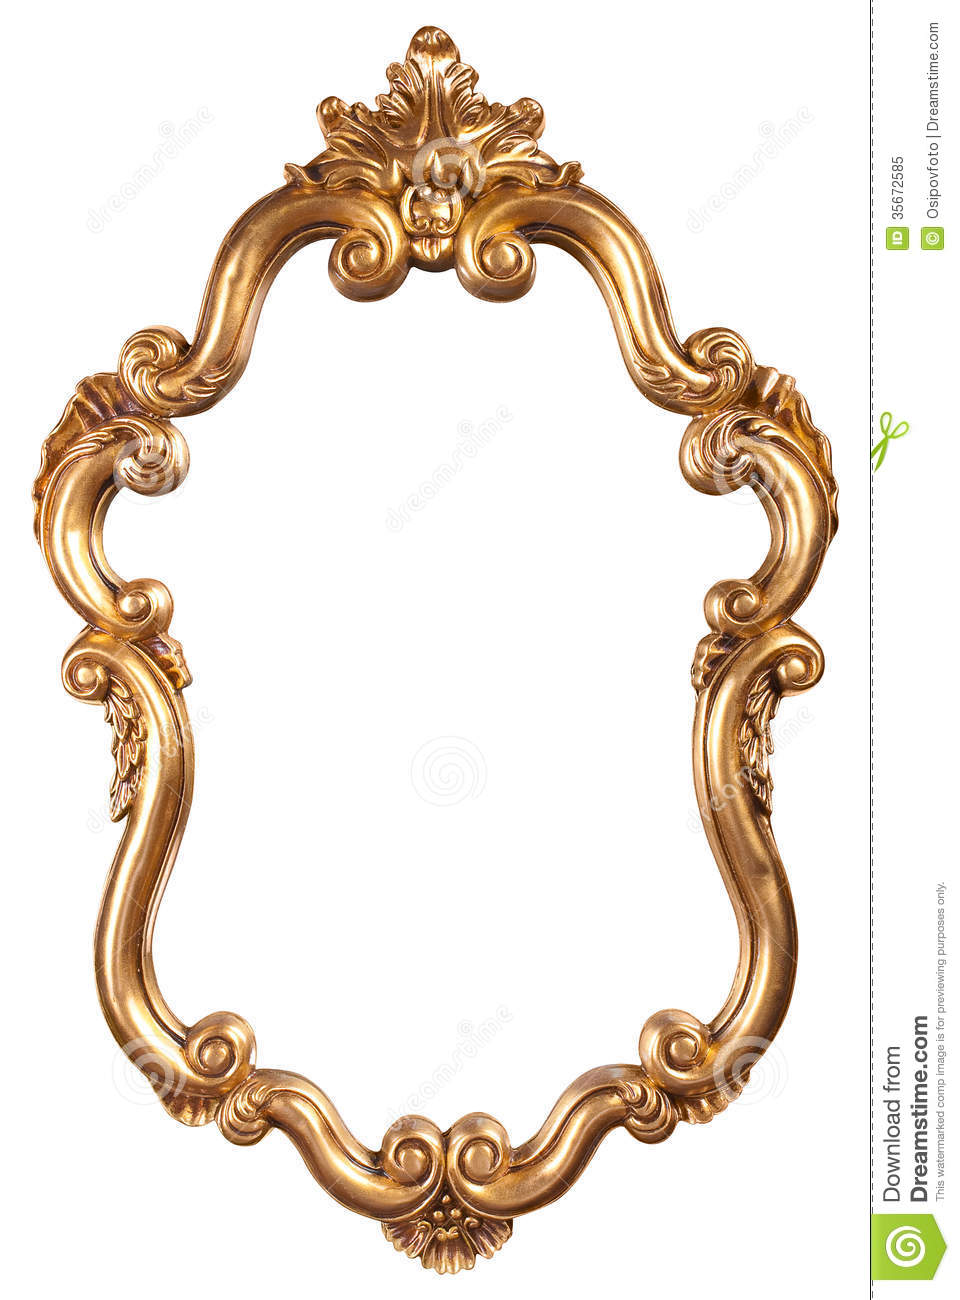 Fabulous Antique Frame Drawing at GetDrawings.com | Free for personal use  SZ33